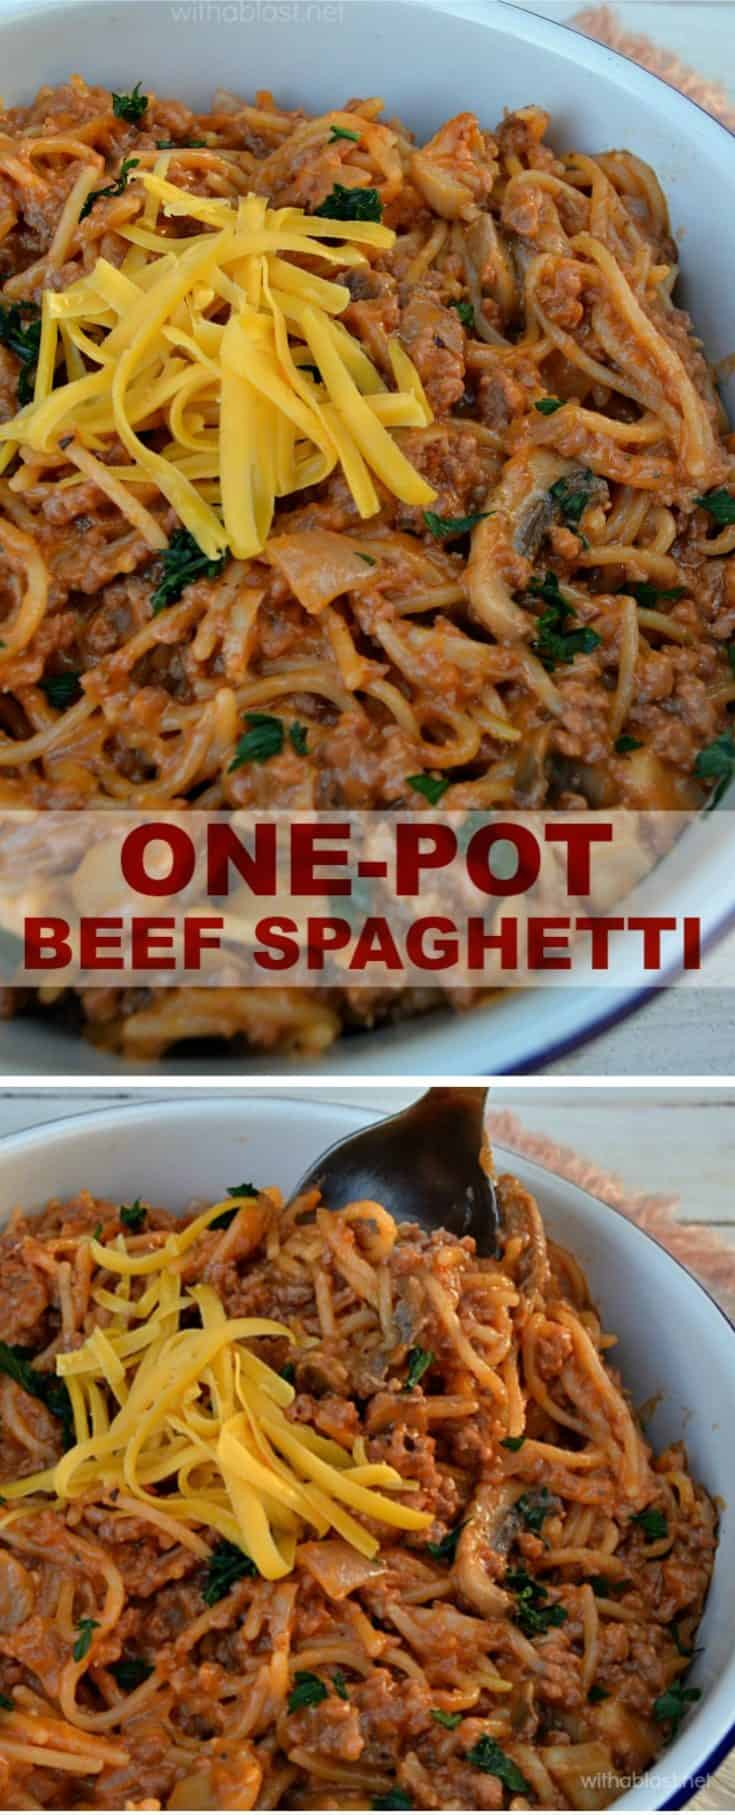 One-Pot Beef Spaghetti is ready in under 25 minutes - a creamy tomato dinner dish with ground beef, vegetables and perfectly spiced !  #OnePotDinner #SpaghettiDinner #GroundBeefRecipes #ComfortFood